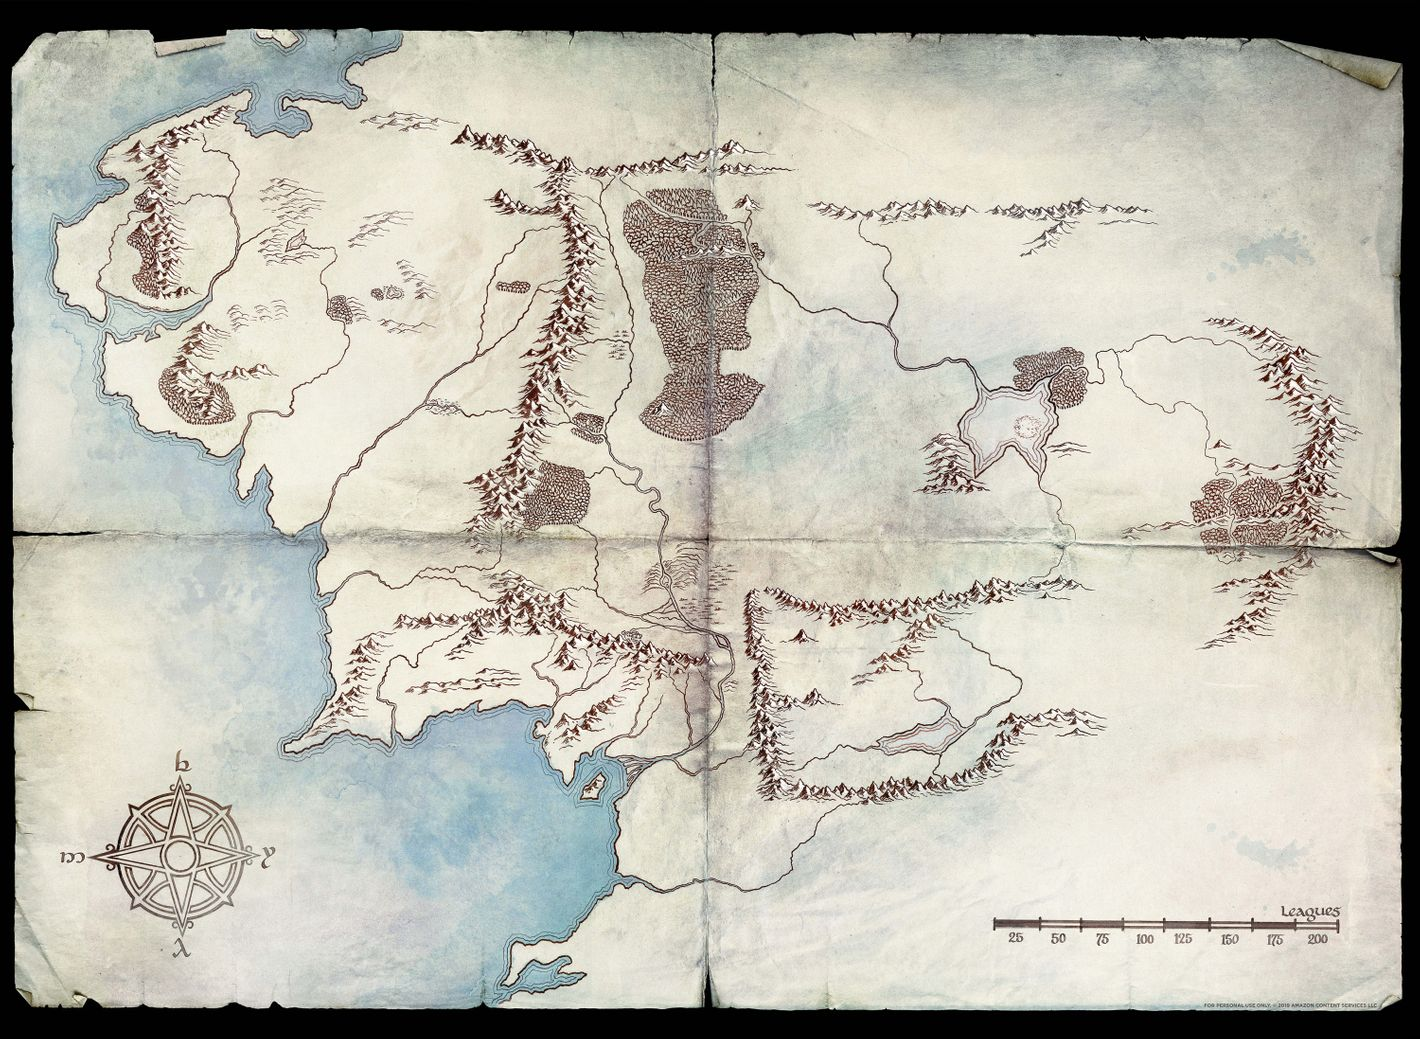 Amazon's Lord of the Rings Series: What Is the Second Age? on moria middle earth map, shadow of mordor middle earth wallpaper, shadow of mordor middle earth character skins, hobbit middle earth map, tolkien middle earth map, shadow of mordor middle earth xbox 360, shadow of mordor middle earth gollum, shadow of mordor middle earth review,